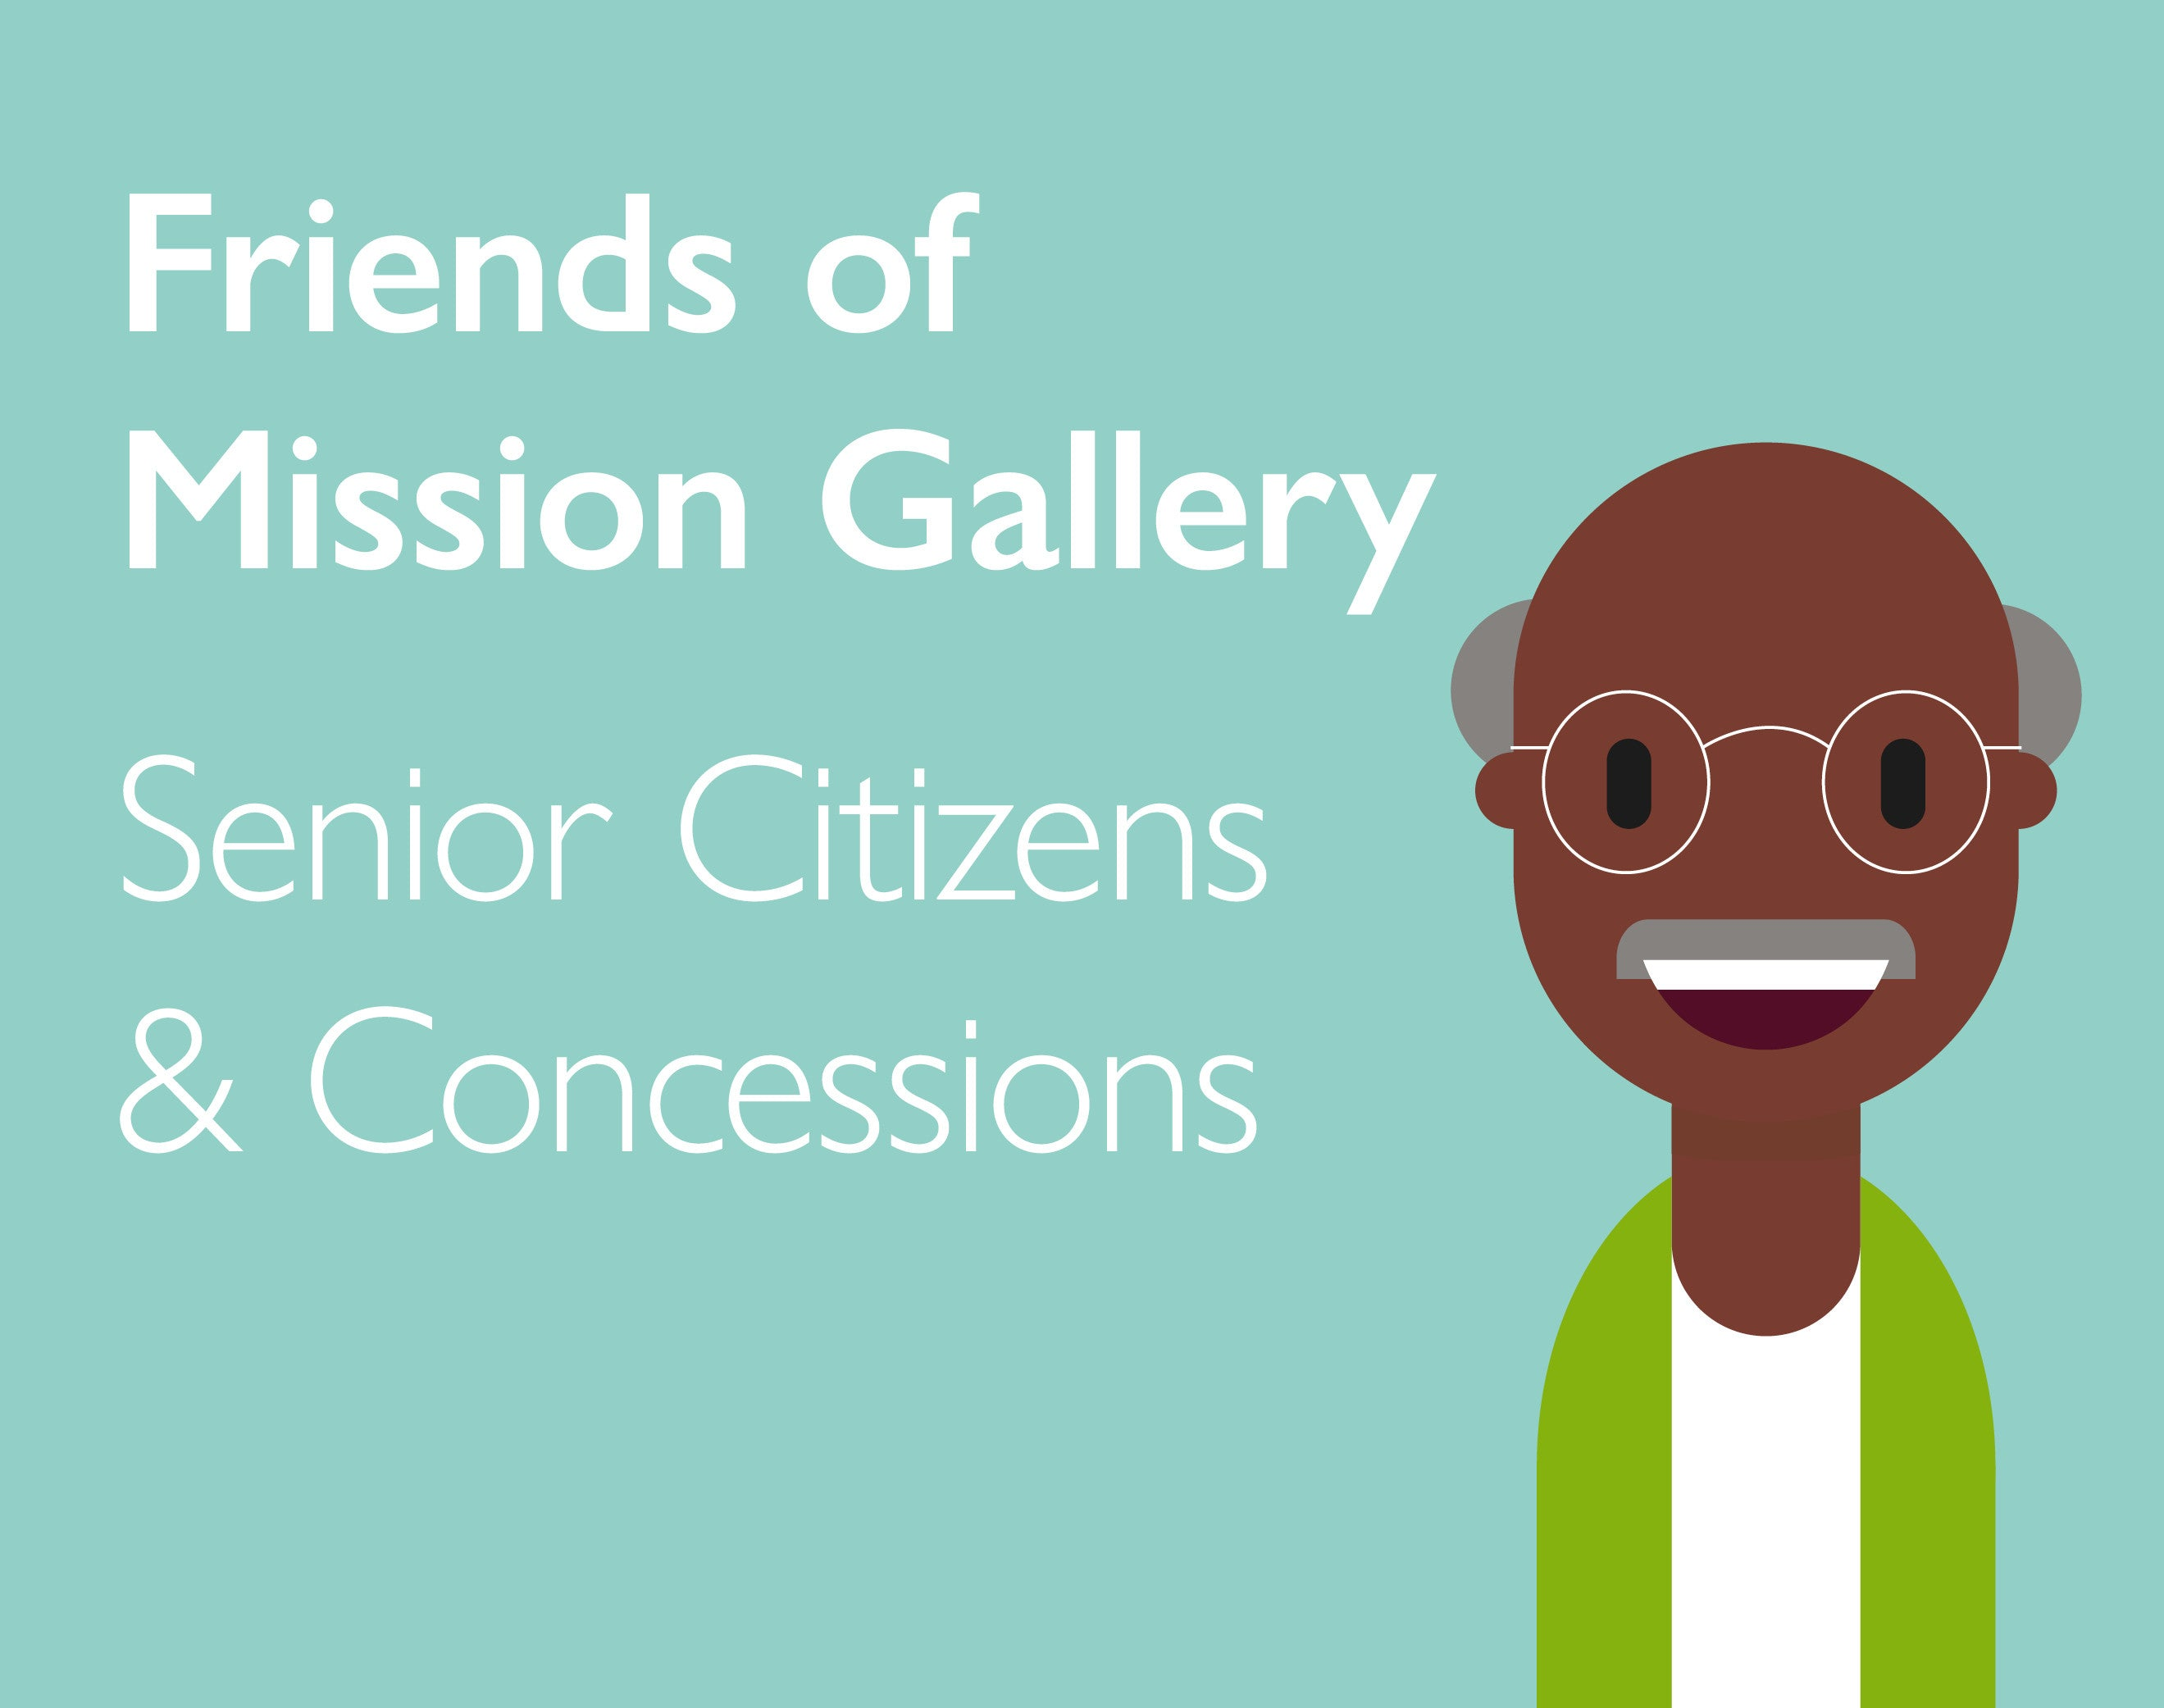 Senior Citizens & Concessions